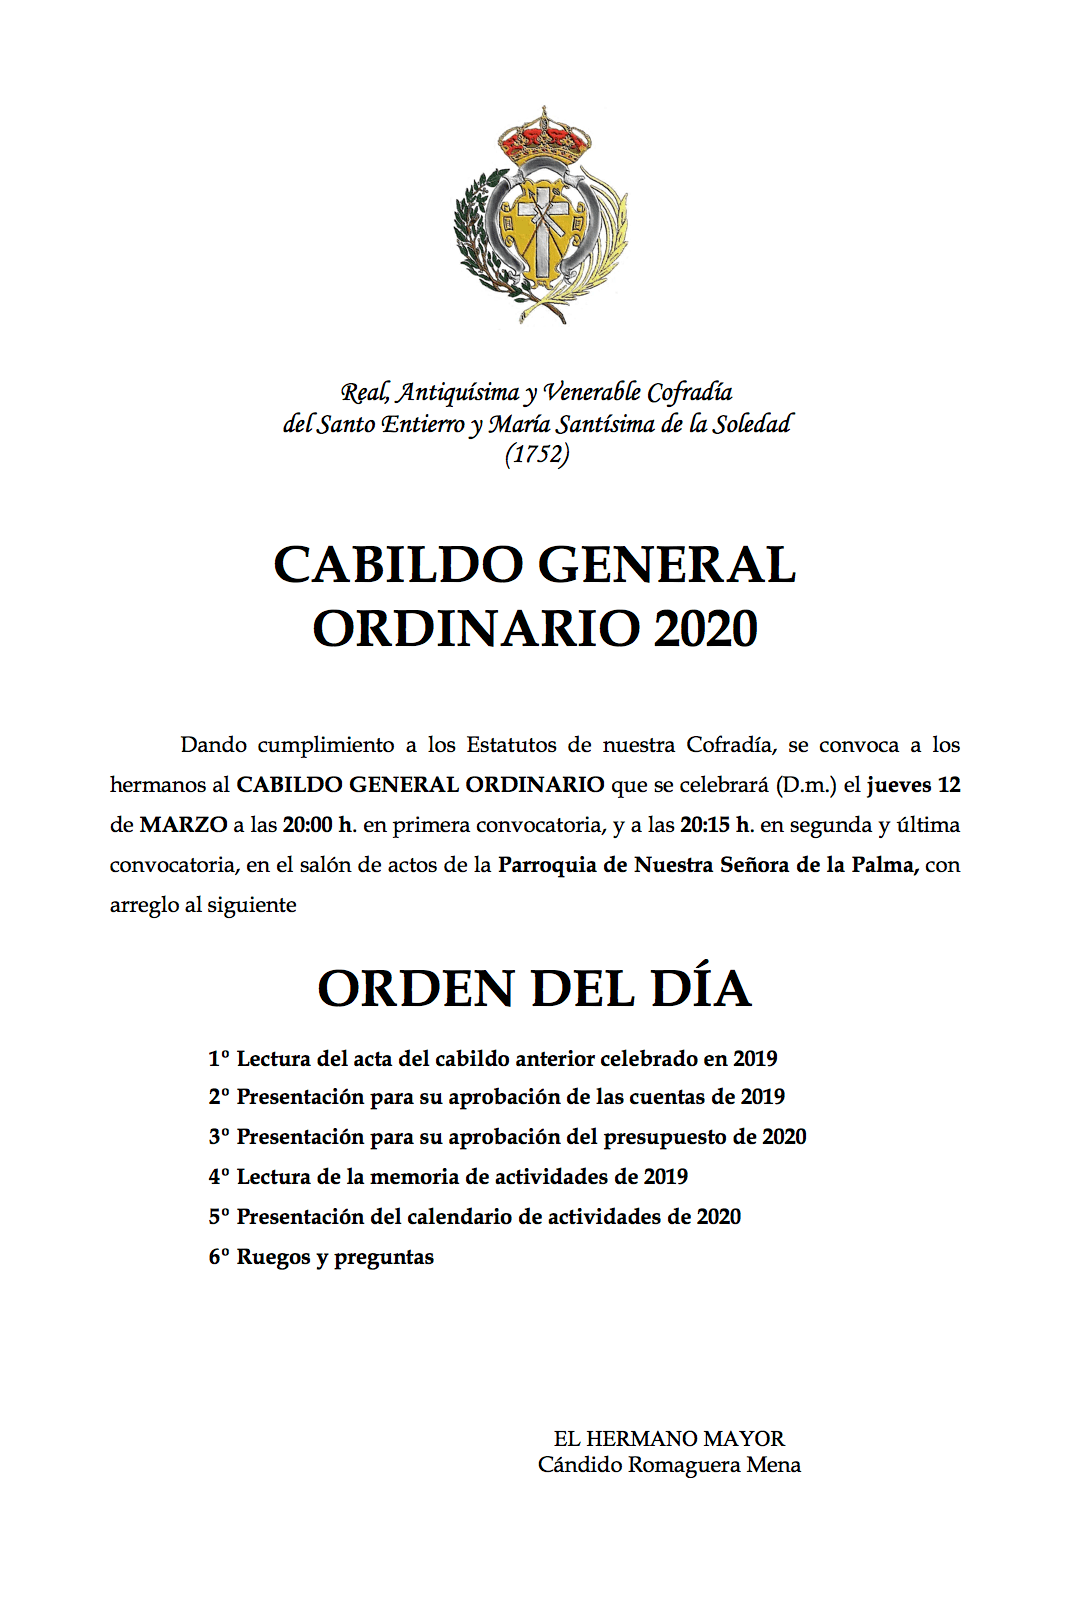 Cabildo General Ordinario 2020